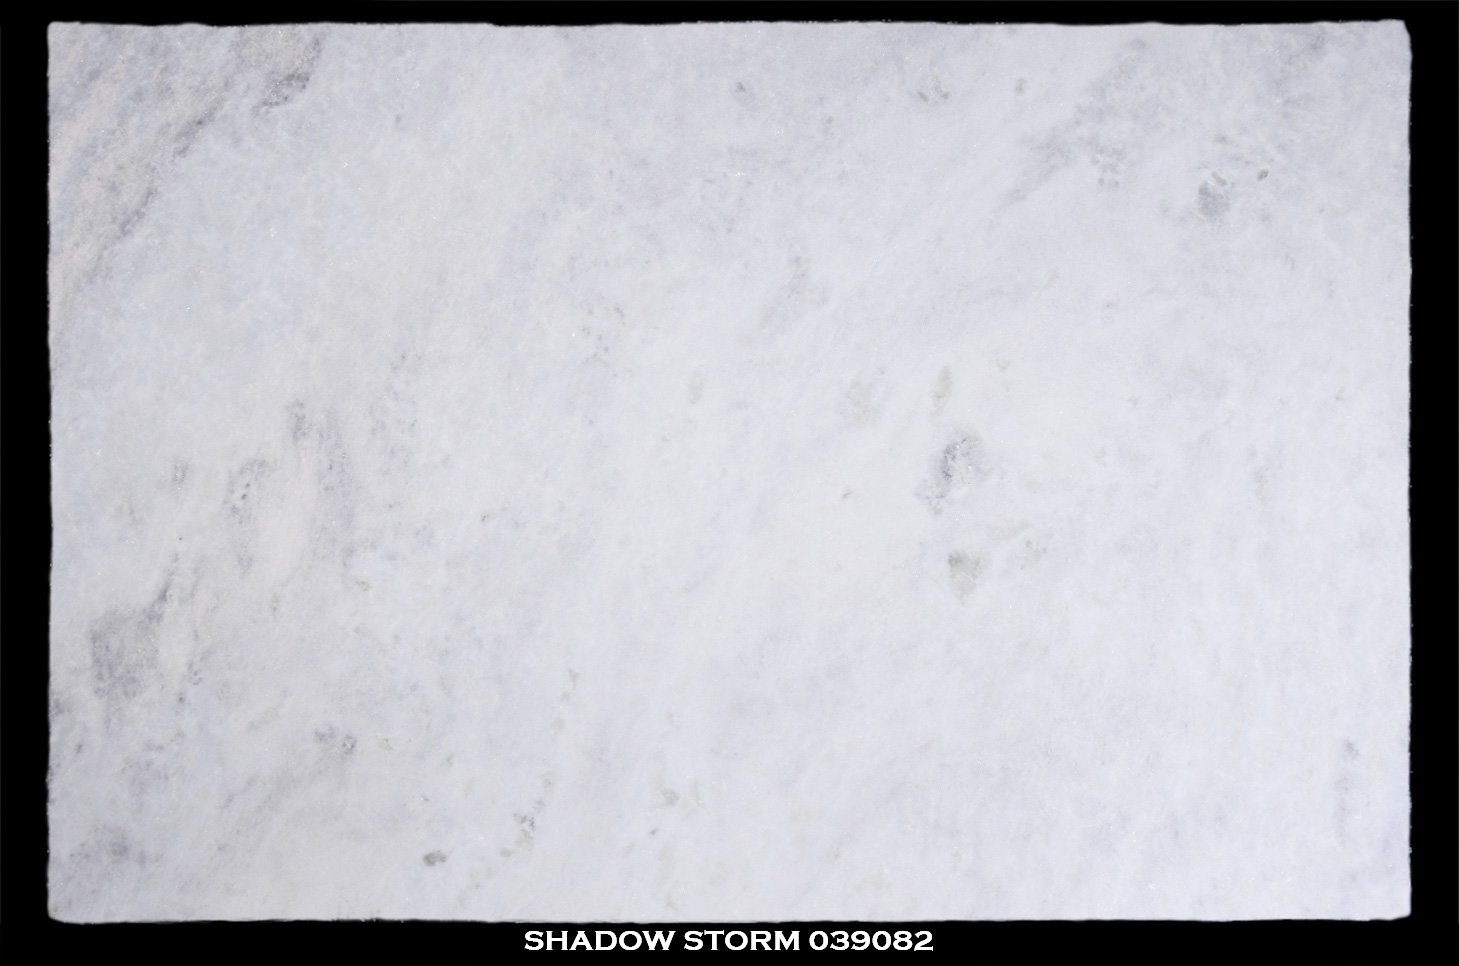 SHADOW-STORM-039082-slab